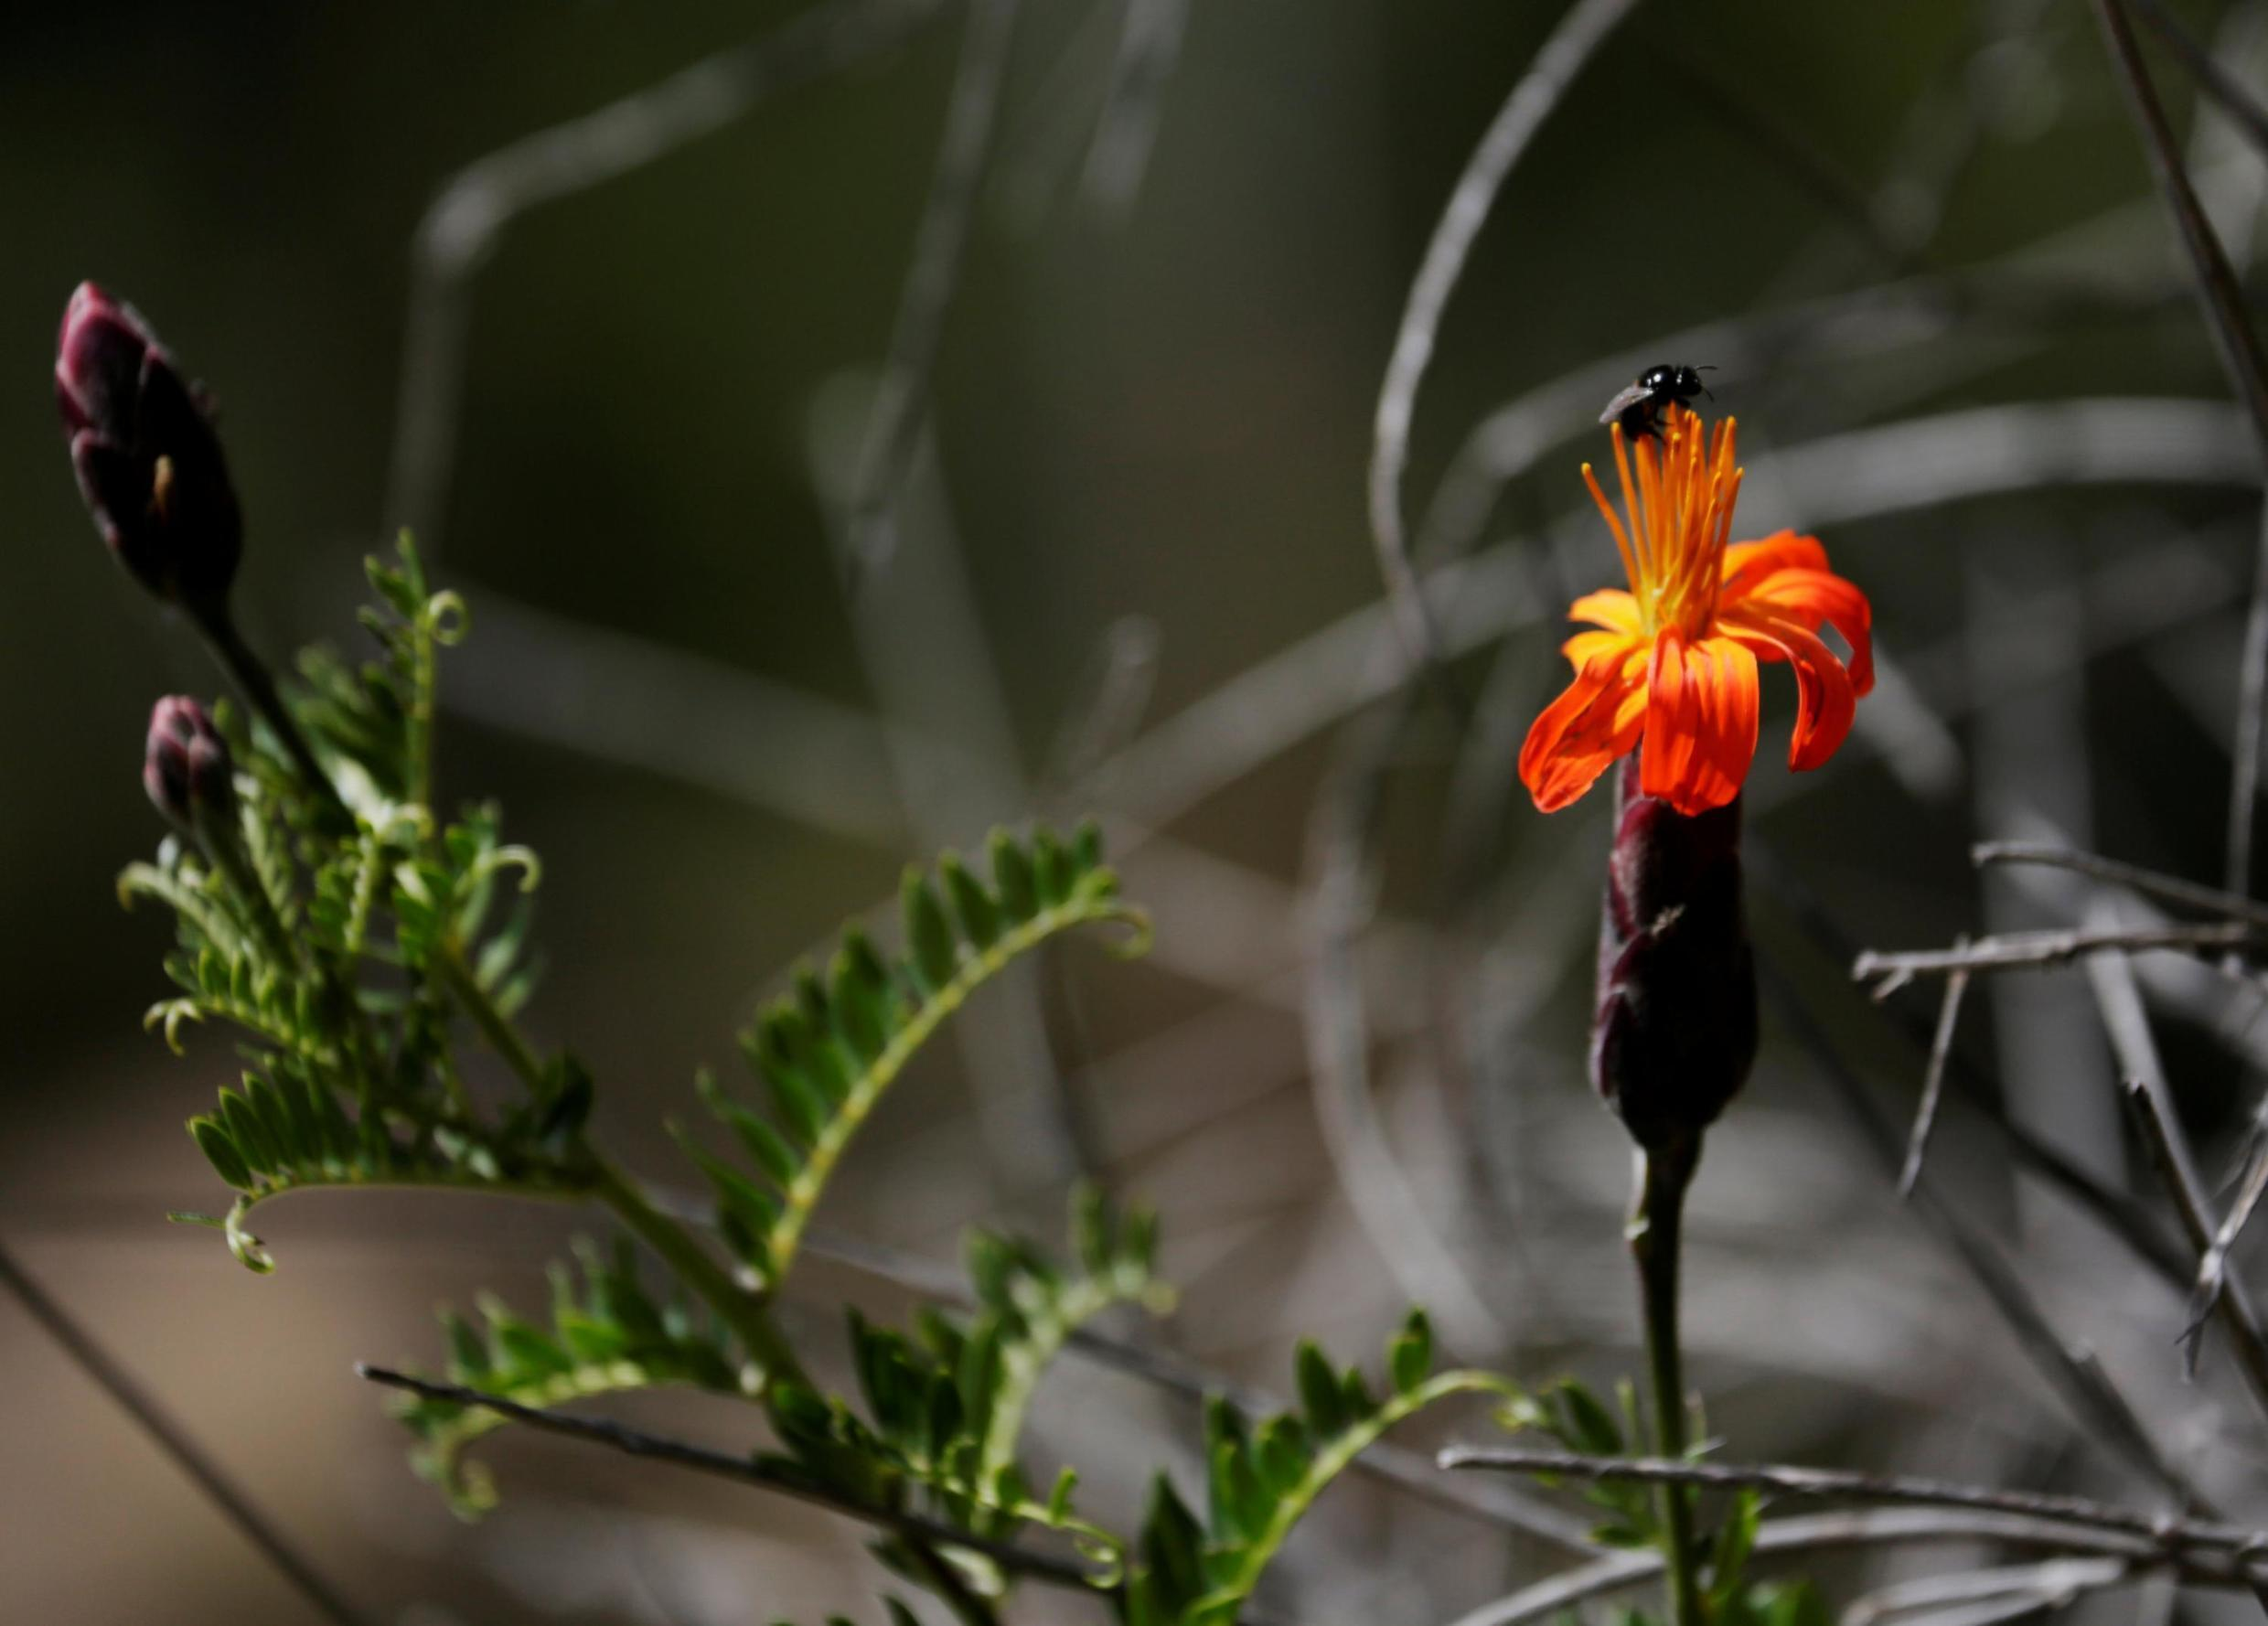 An insect on the flower is seen at the Auquisamana park on t6he outskirts of La Paz, Bolivia, April 29, 2019. An app challenge has inspired La Paz residents to document biodiversity.